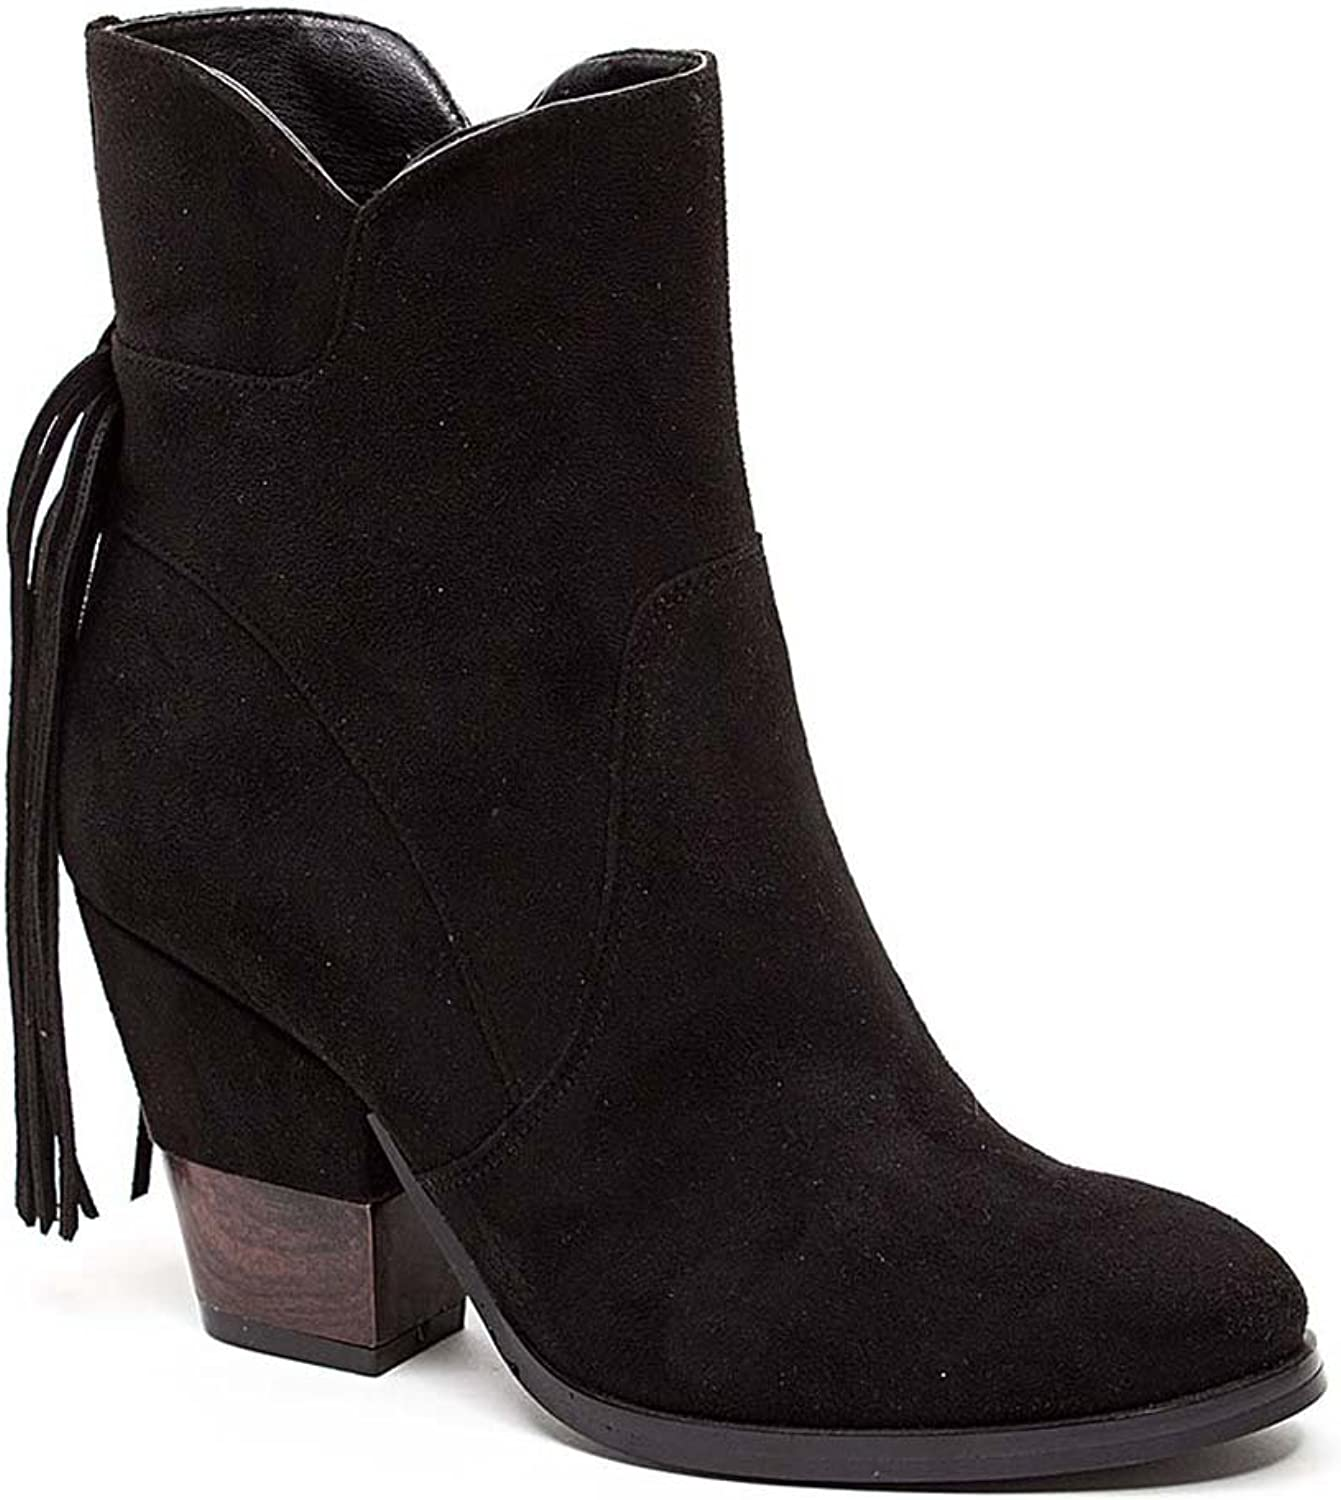 French blue Women's Saddle Rock High Heel Faux Suede Ankle Boot